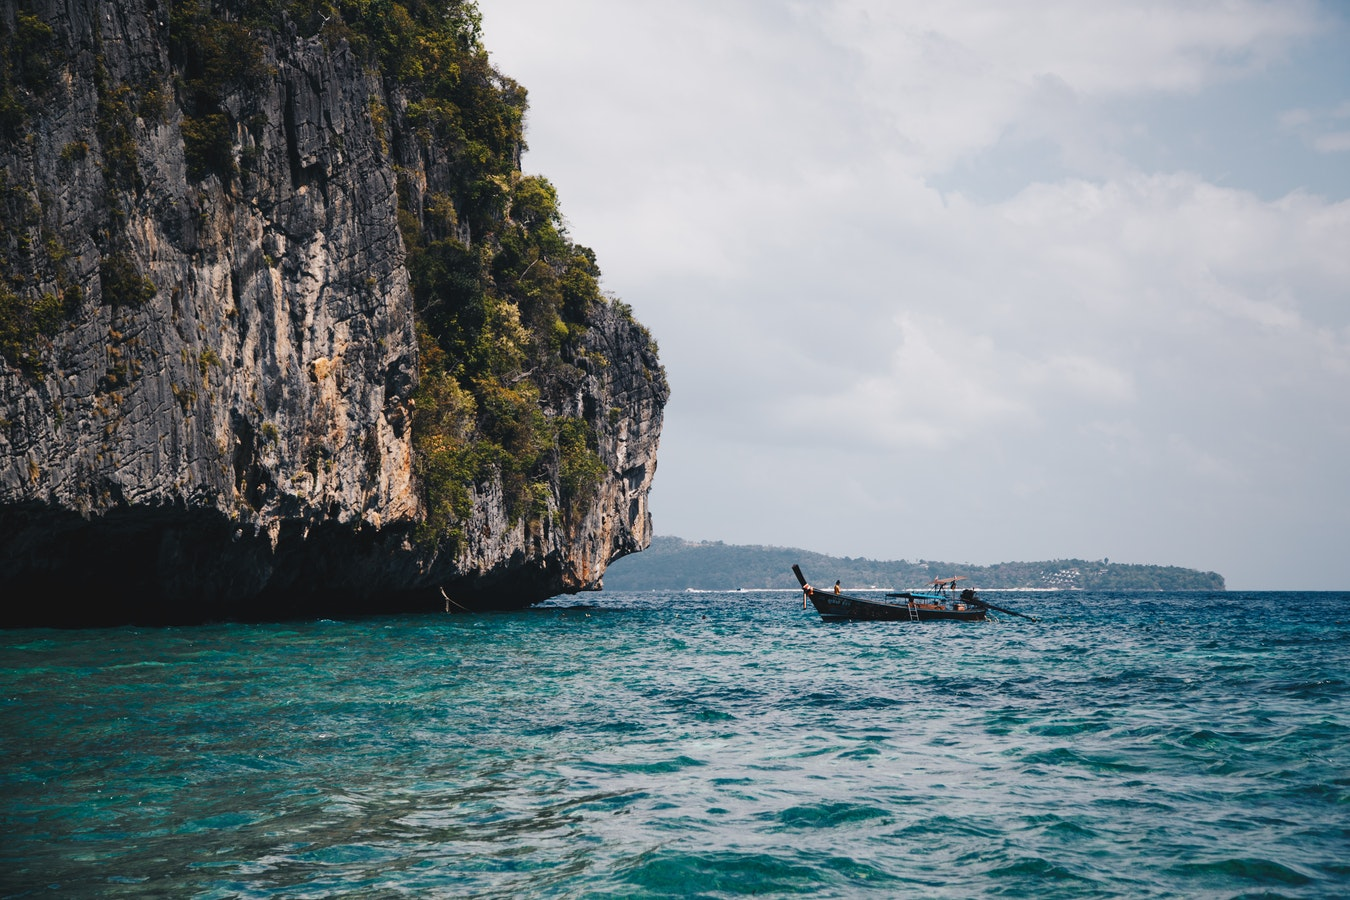 Boat on the water near brown rock formation during daytime, Krabi travel guide